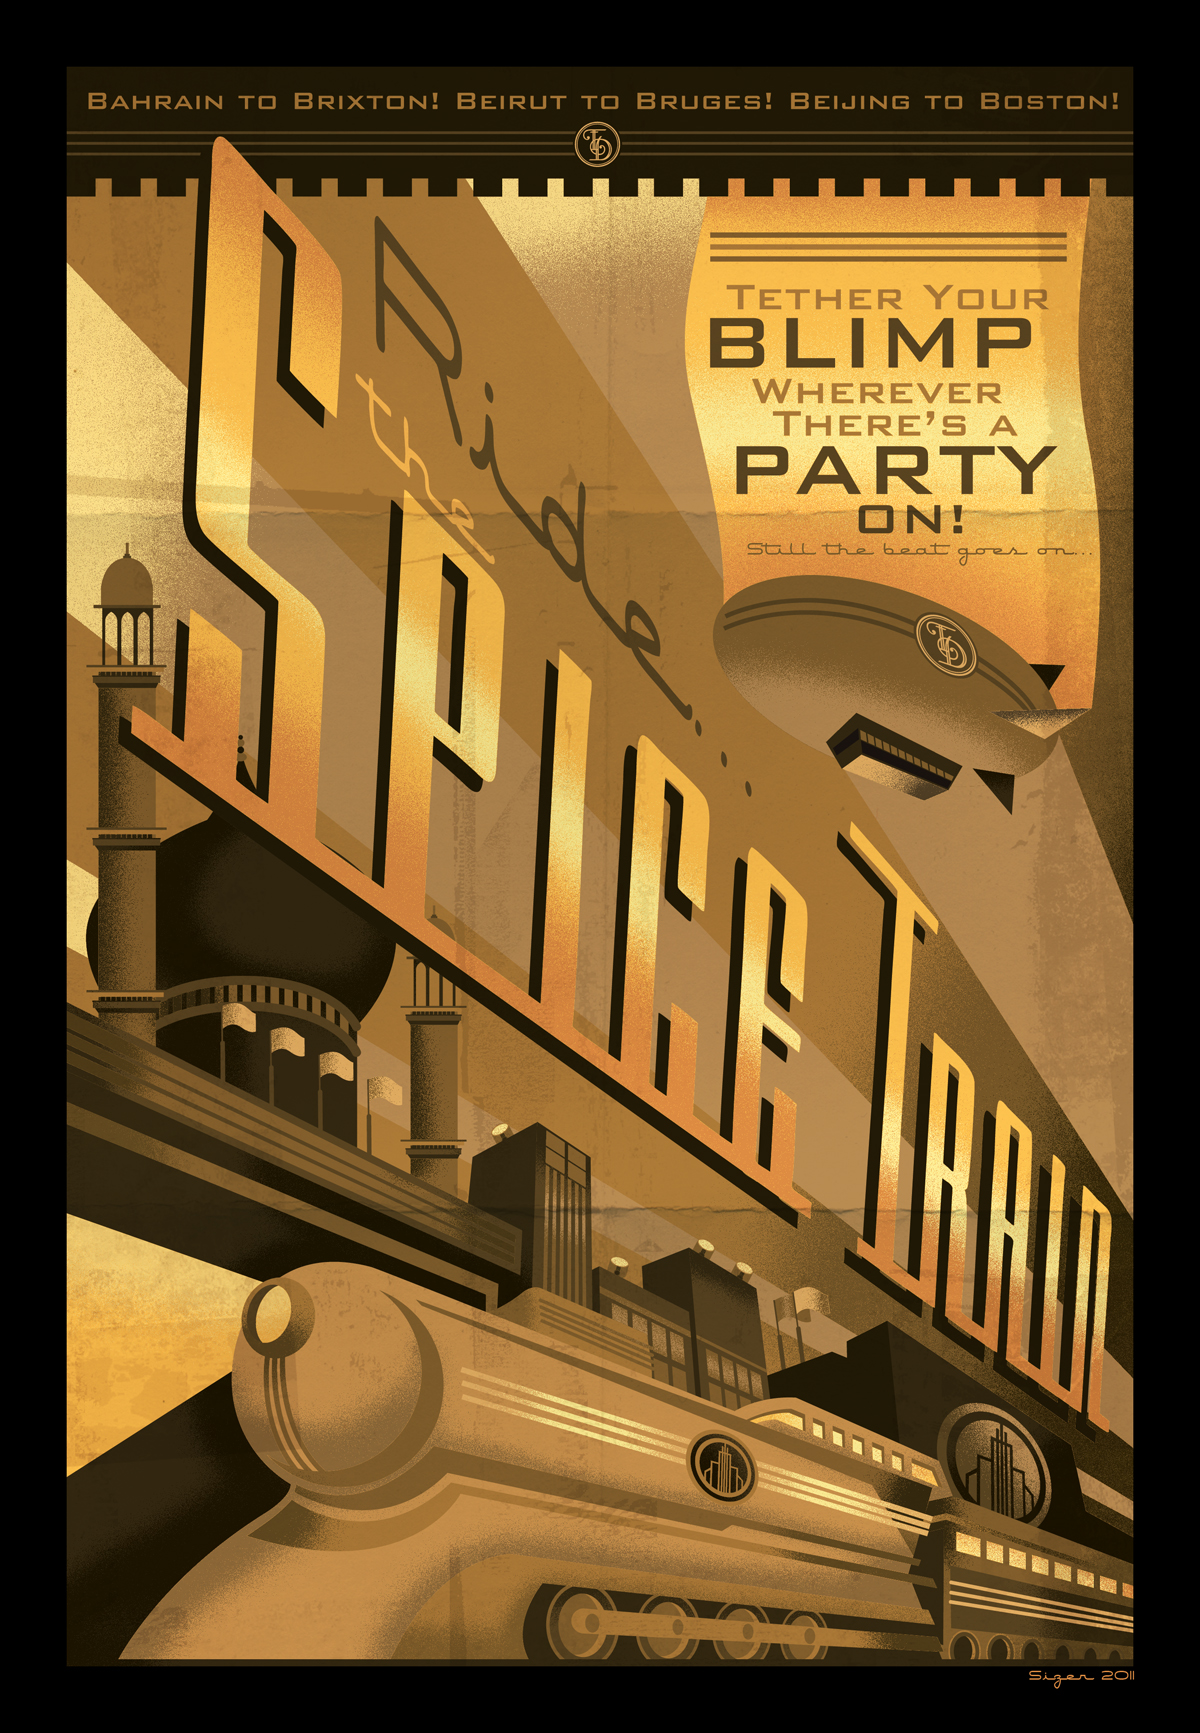 Thomas Dolby SPICE TRAIN poster